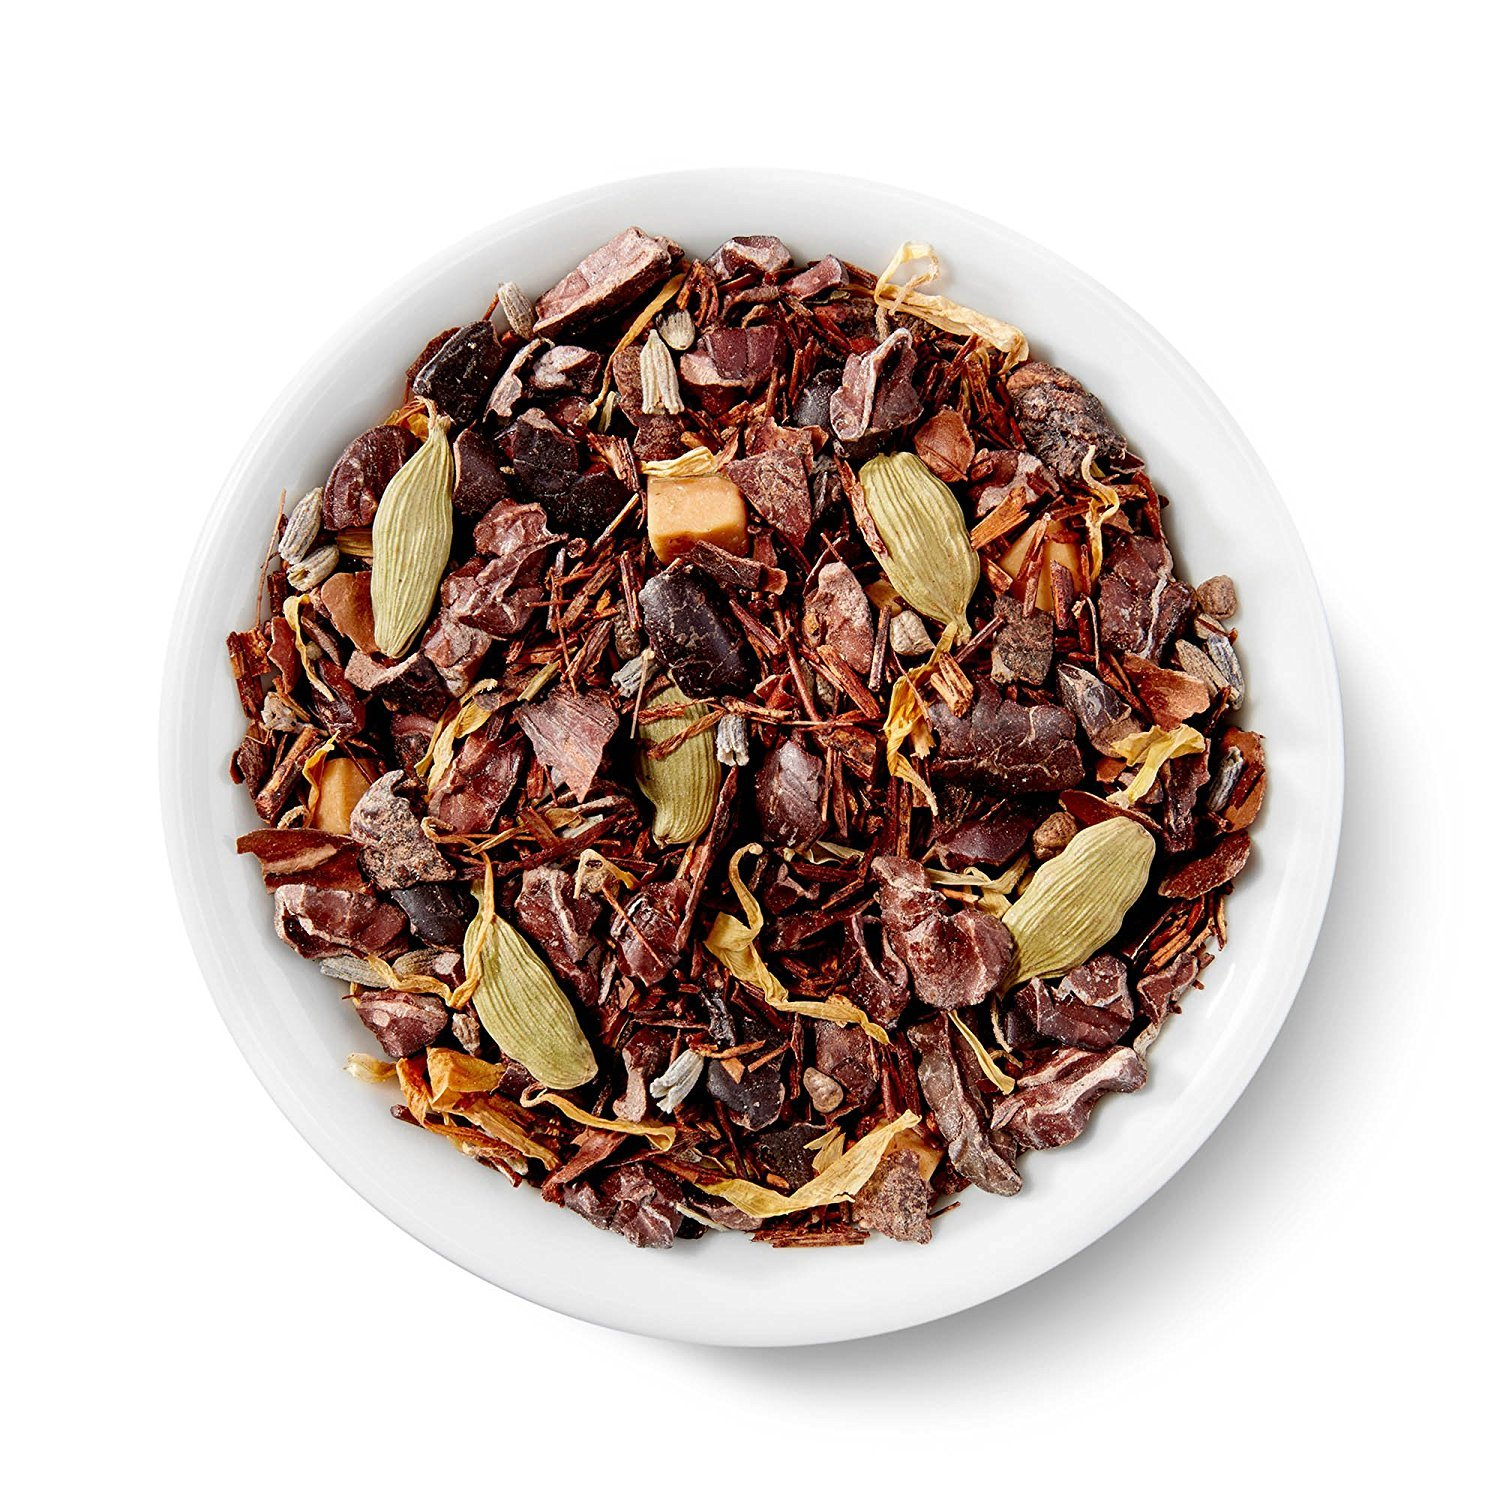 Lavender Creme Herbal Tea by Teavana 2 oz by Teavana (Image #1)